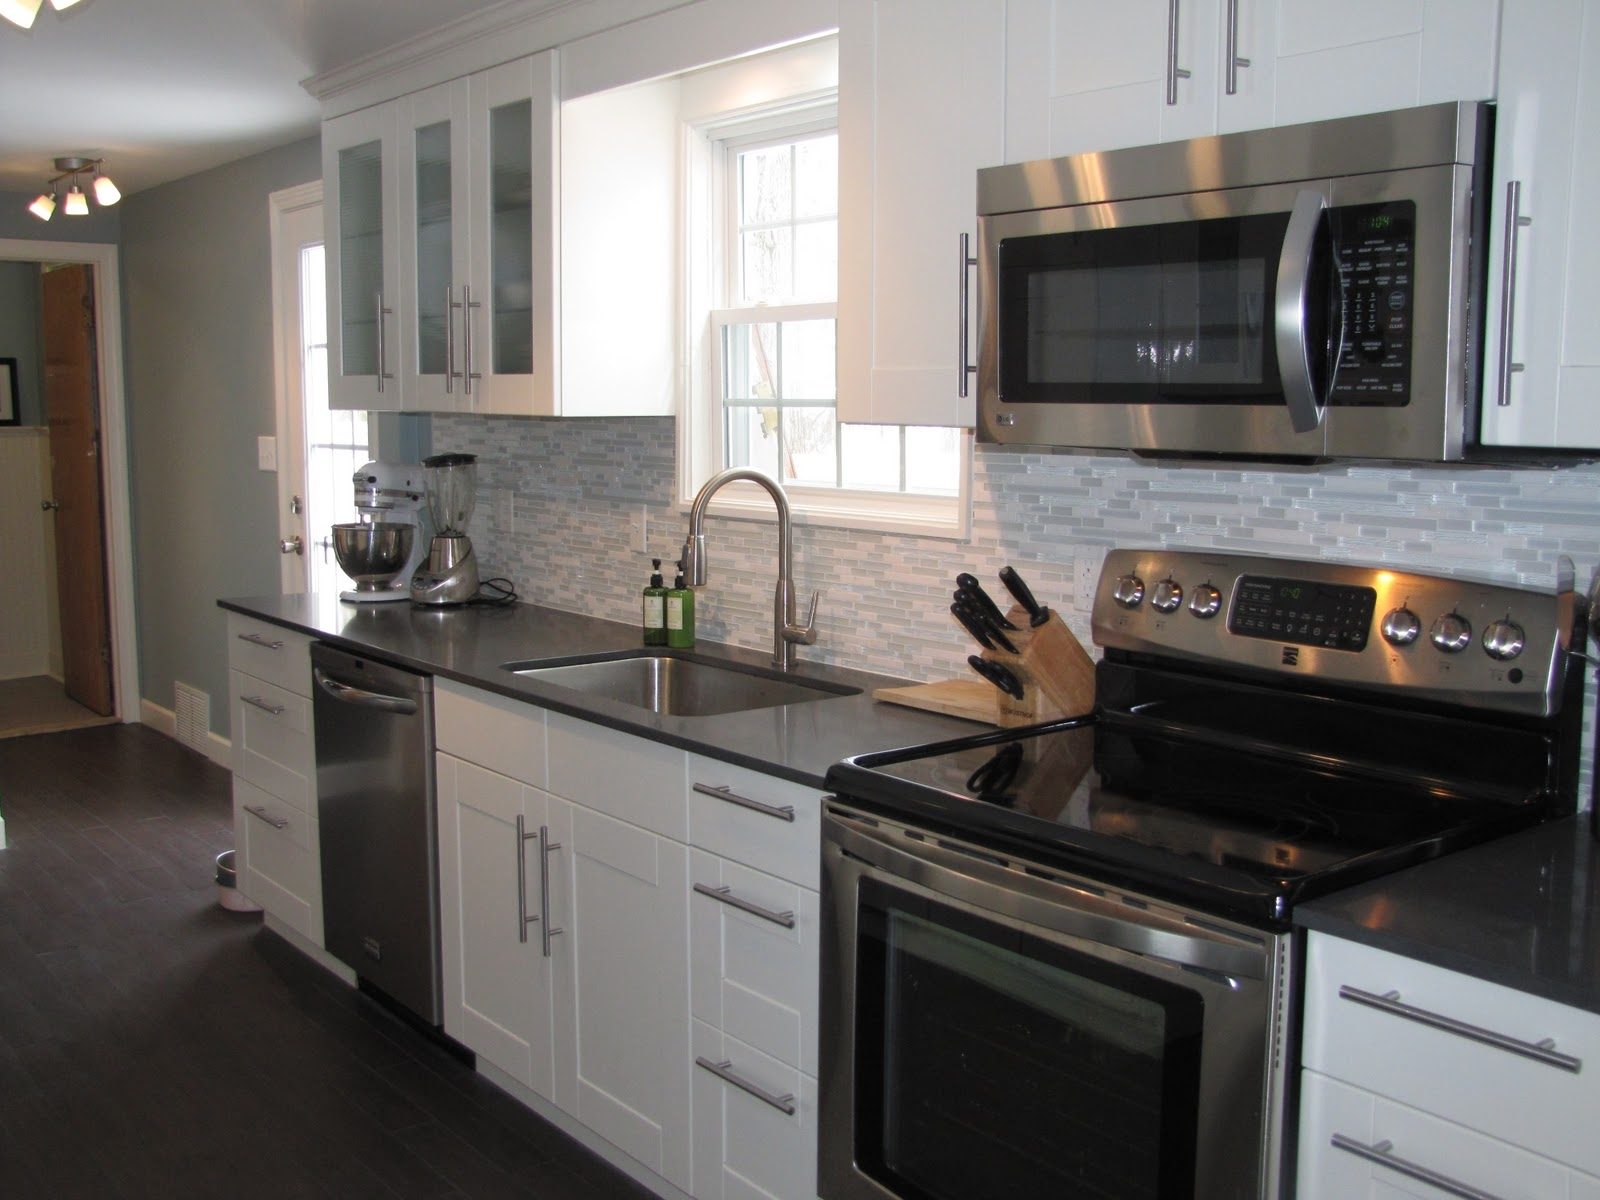 Pictures Of Kitchens With White Cabinets And Stainless Appliances